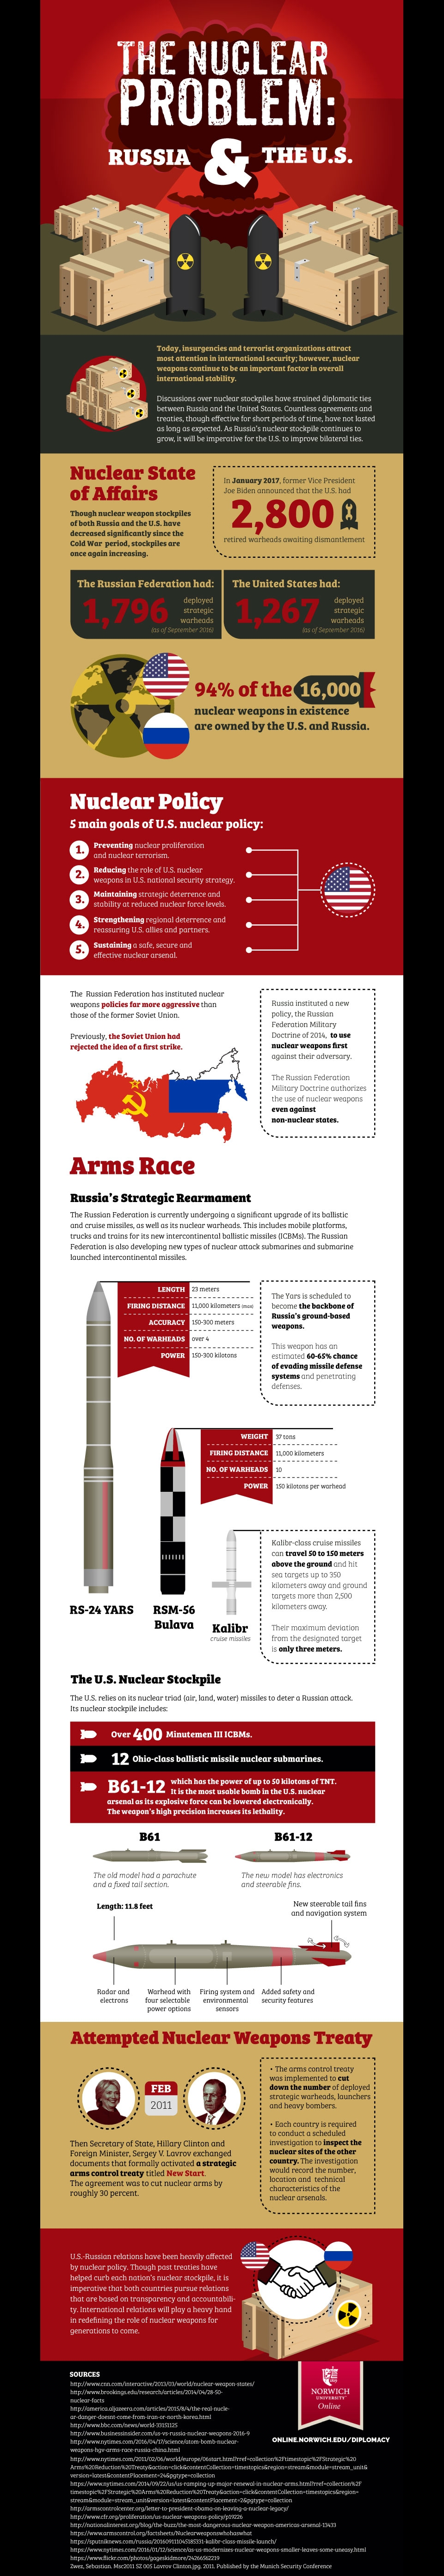 Nuclear Problem Infographic image